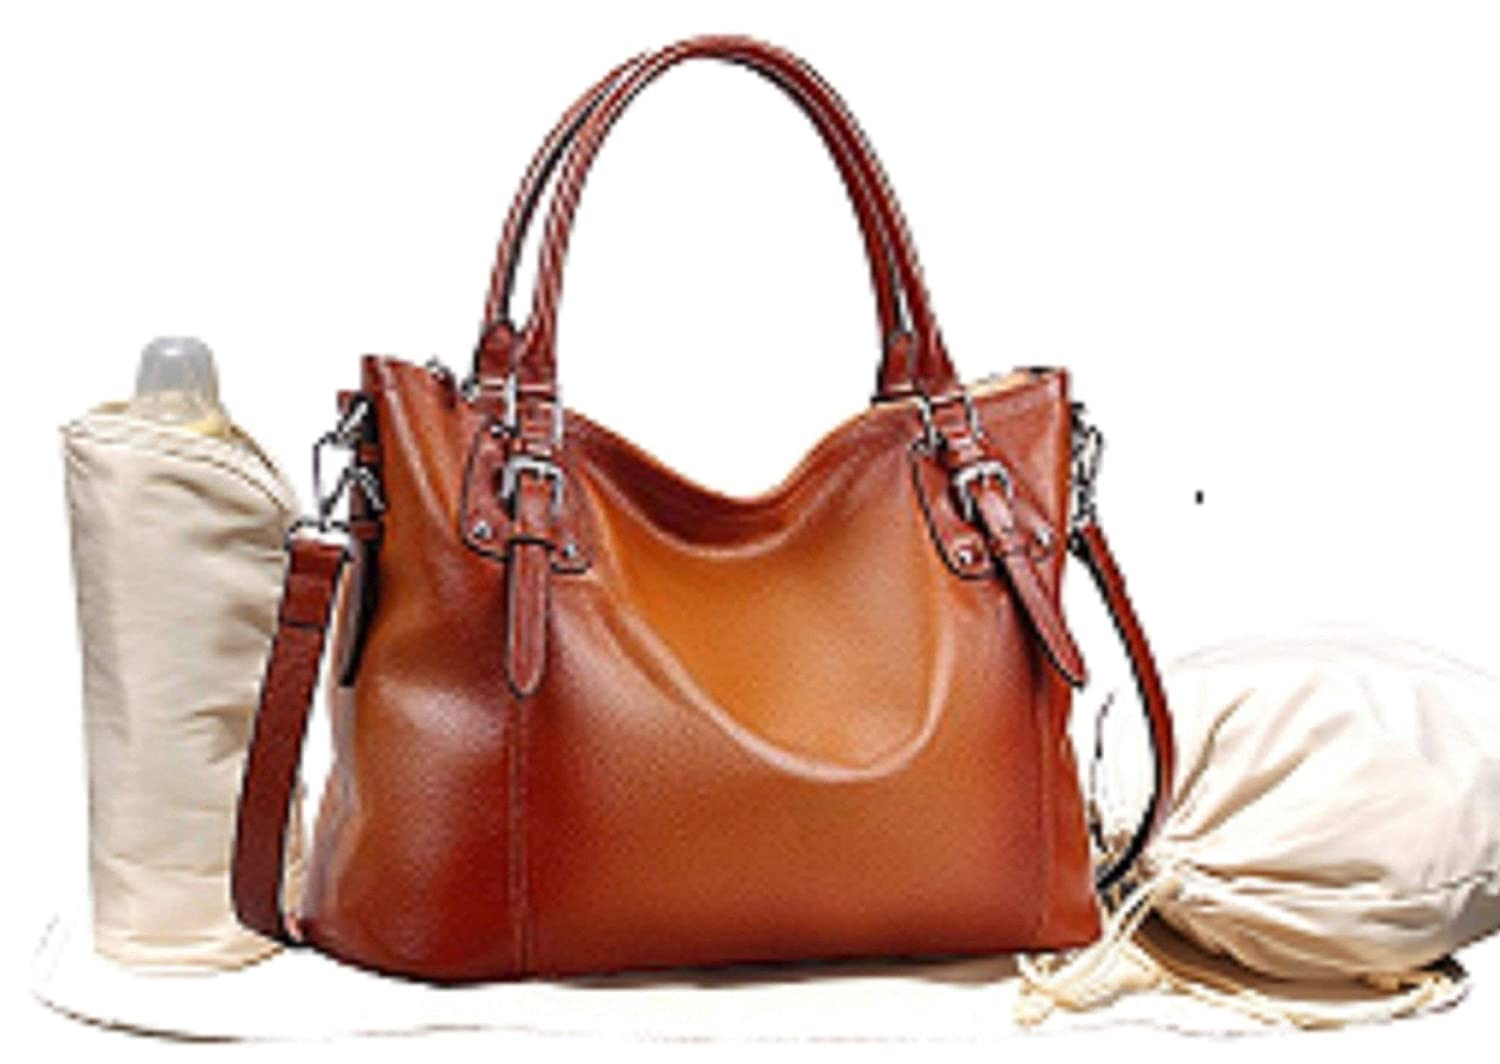 Leather Diaper Bag, Cross Body Tote Diaper Bag, Baby Changing Pad, Insulated Bottle Holder, Drawstring Sac, Stroller Straps